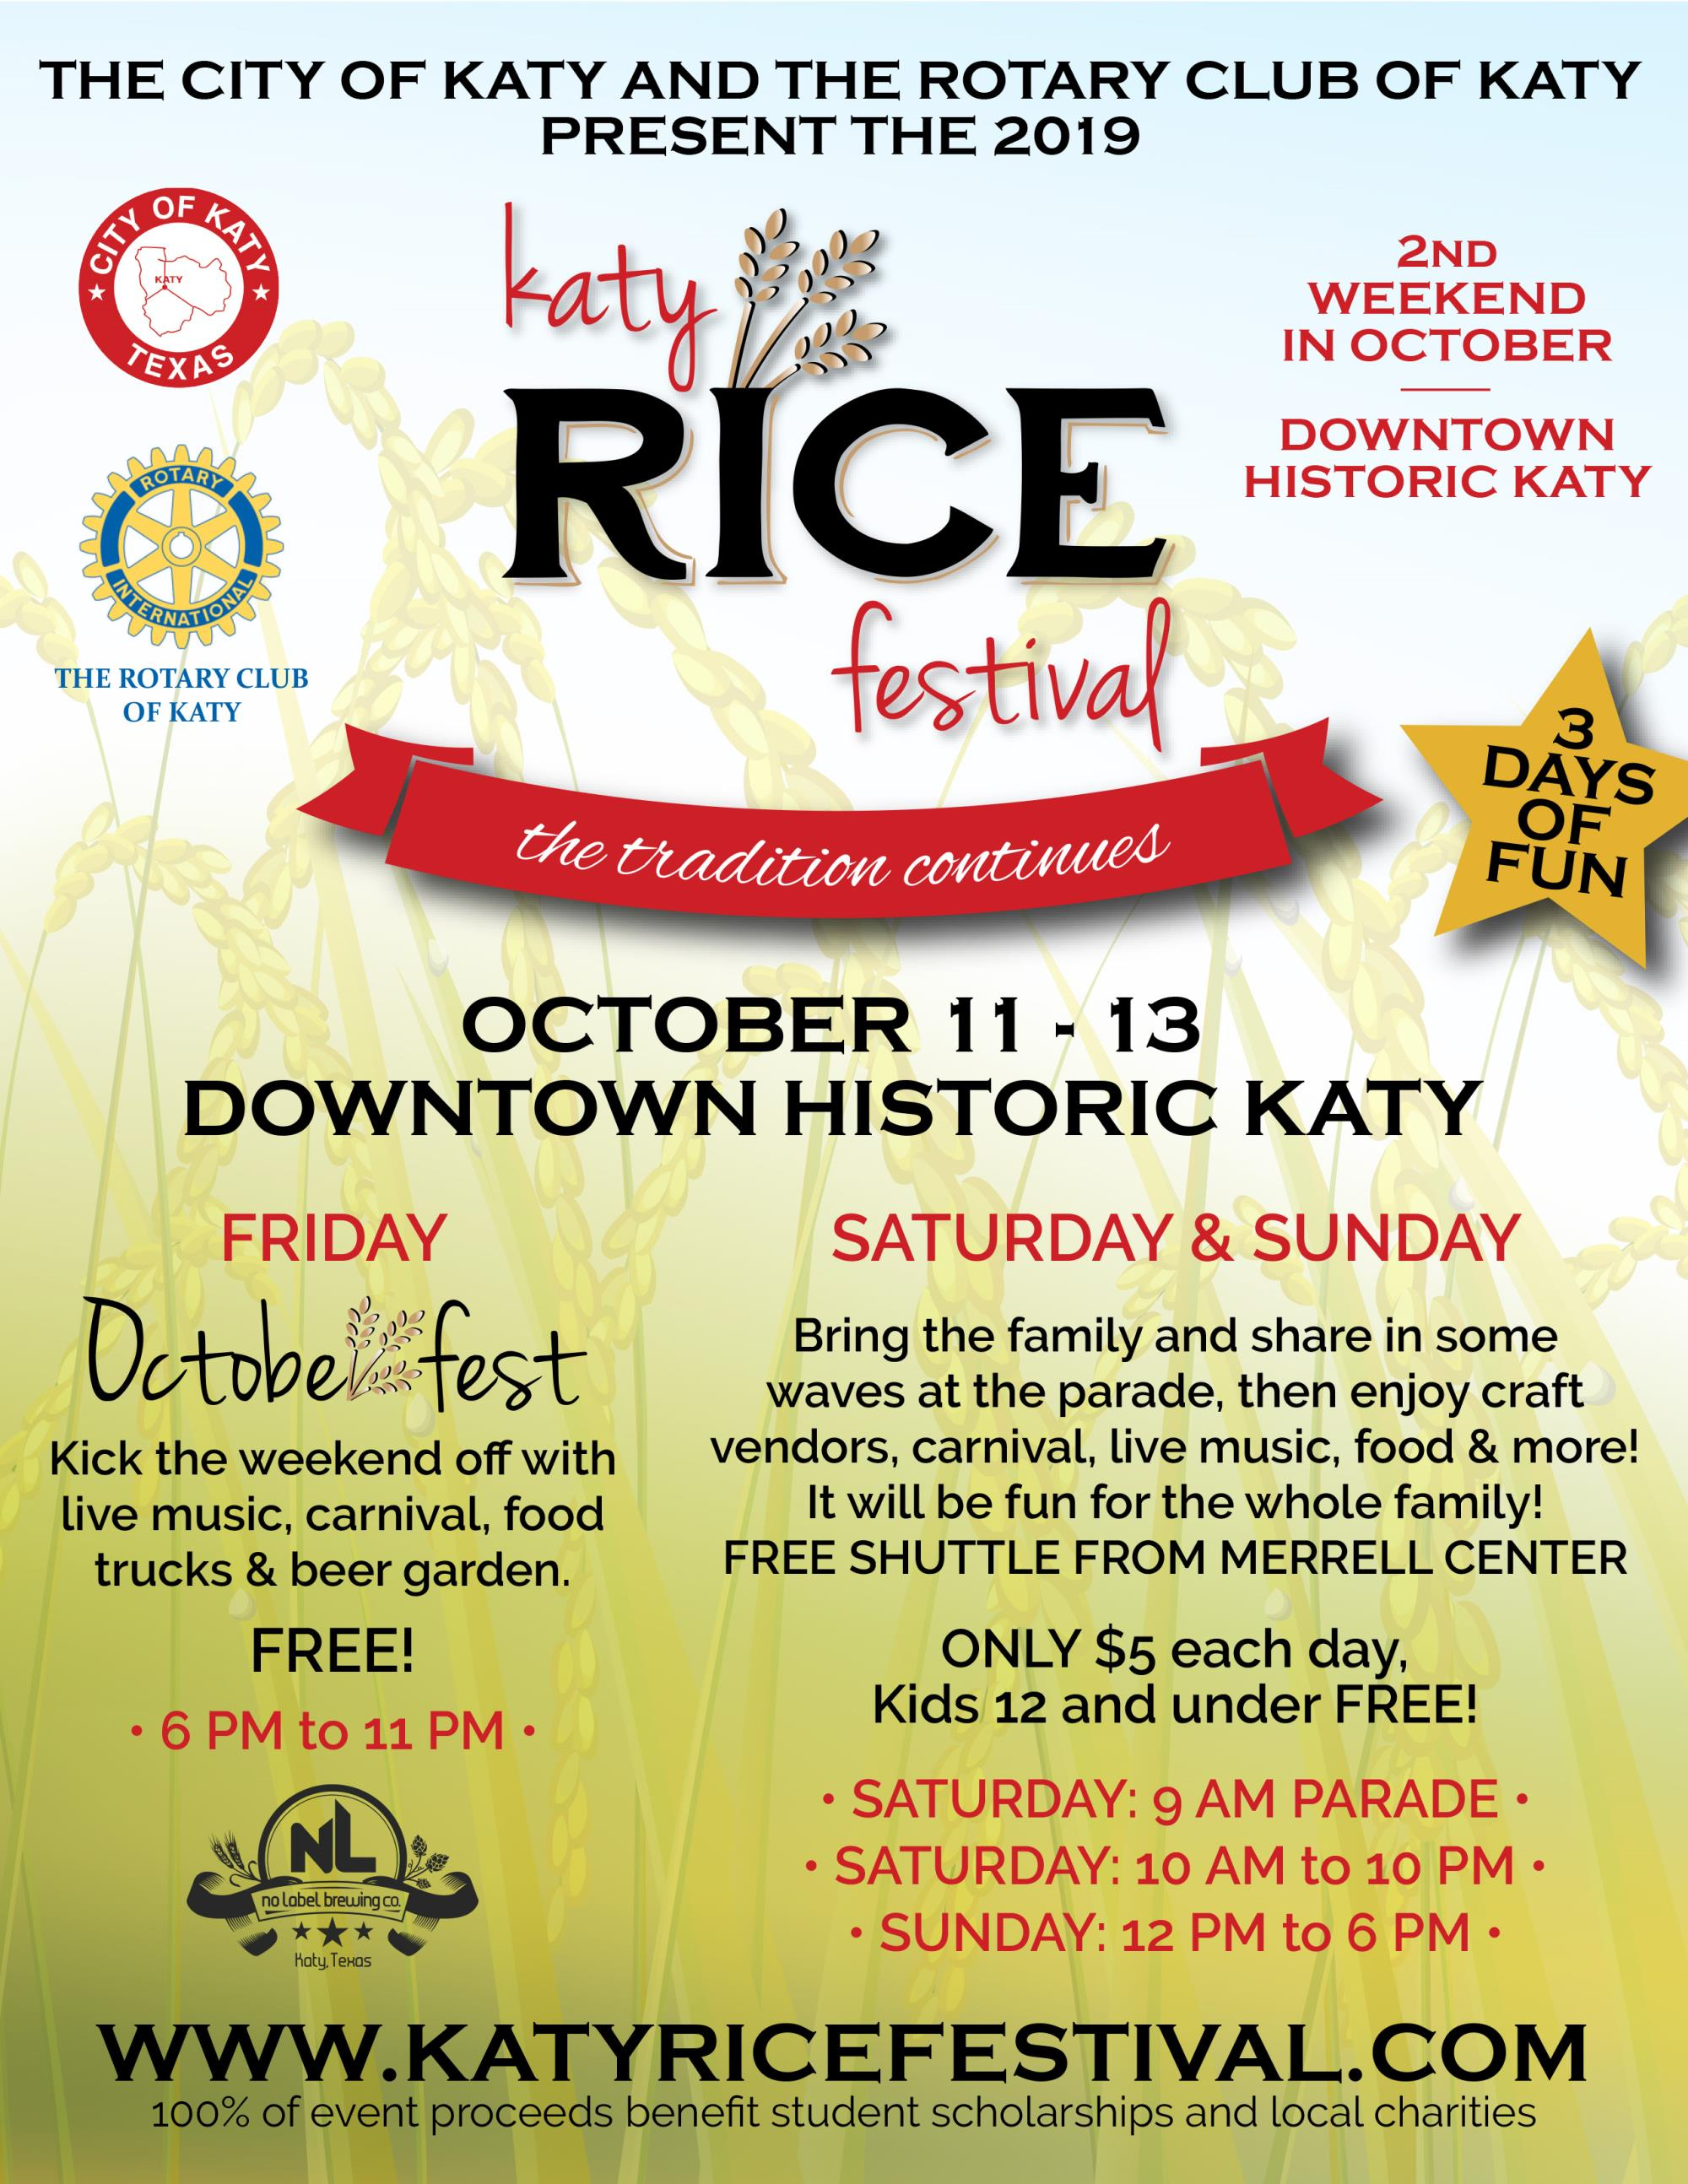 2019 Katy Rice Festival Flyer